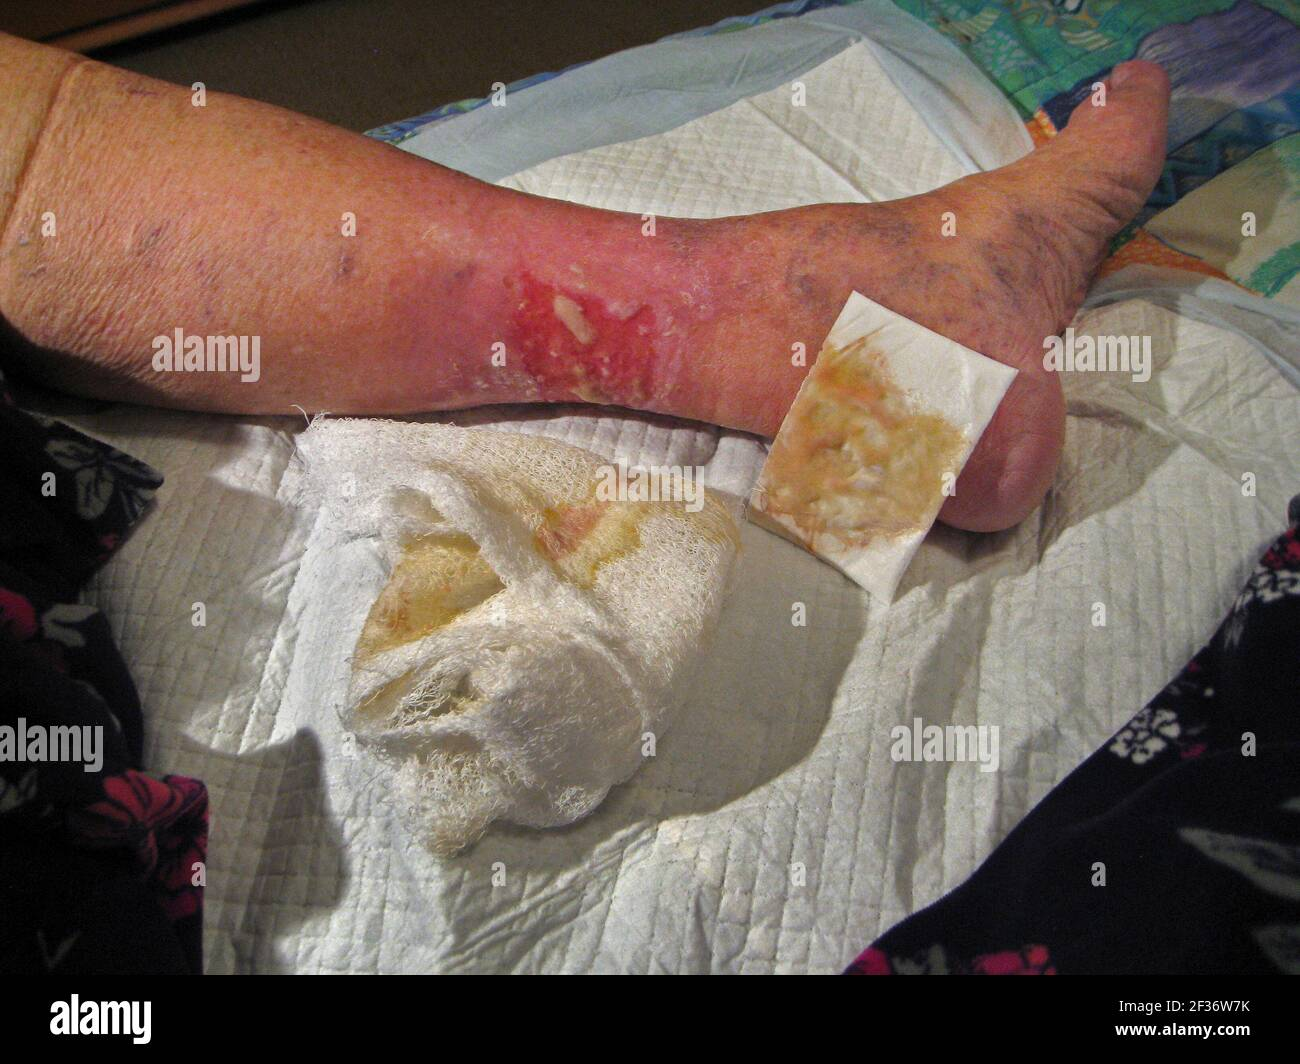 """Massive skin inflammation on the lower leg of an elderly Caucasian female is shown after a nonstick pad and cotton wrap bandaging are removed before the dressing is changed at a hospital Wound Center in Florida, USA. Known as """"stasis dermatitis,"""" this ugly and painful rash was caused by a buildup of fluid due to poor blood circulation in the lower legs that is common to some older adults, especially women. Symptoms of this medical condition include oozing and crusting open sores (ulcers), redness or other discoloration of the skin, swelling and itching. Healing can take considerable time. Stock Photo"""